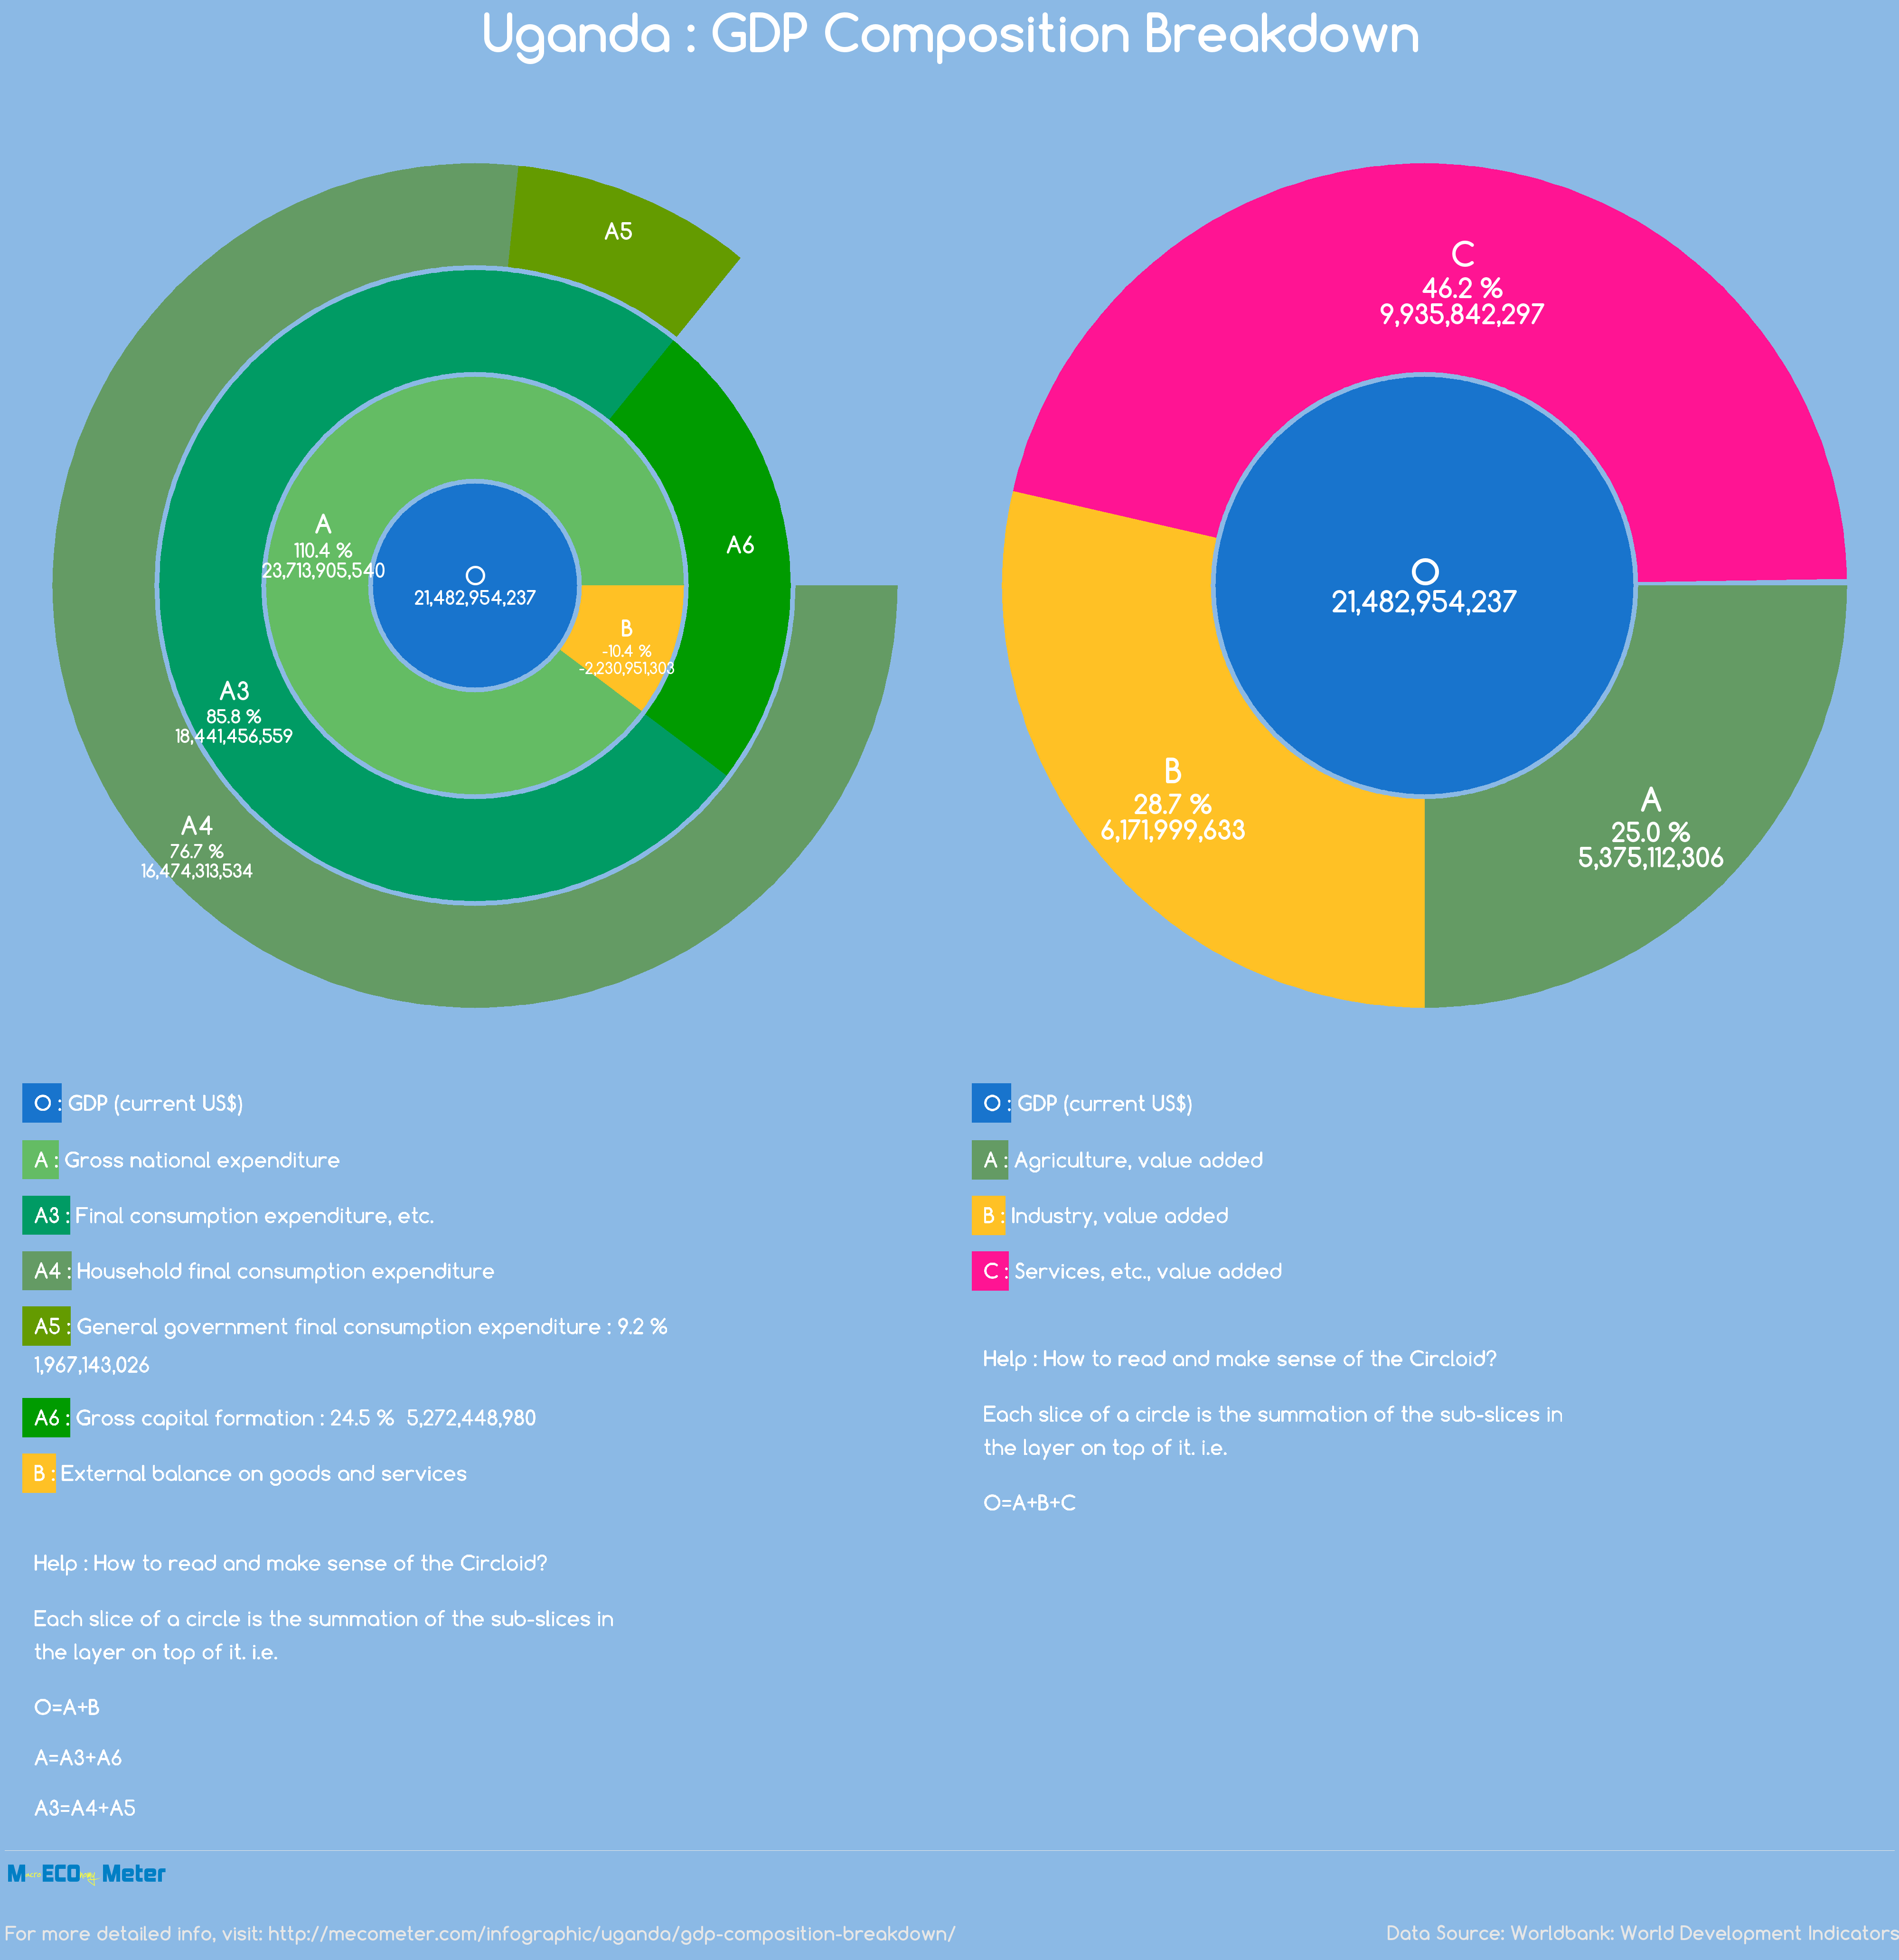 Uganda : GDP Composition Breakdown